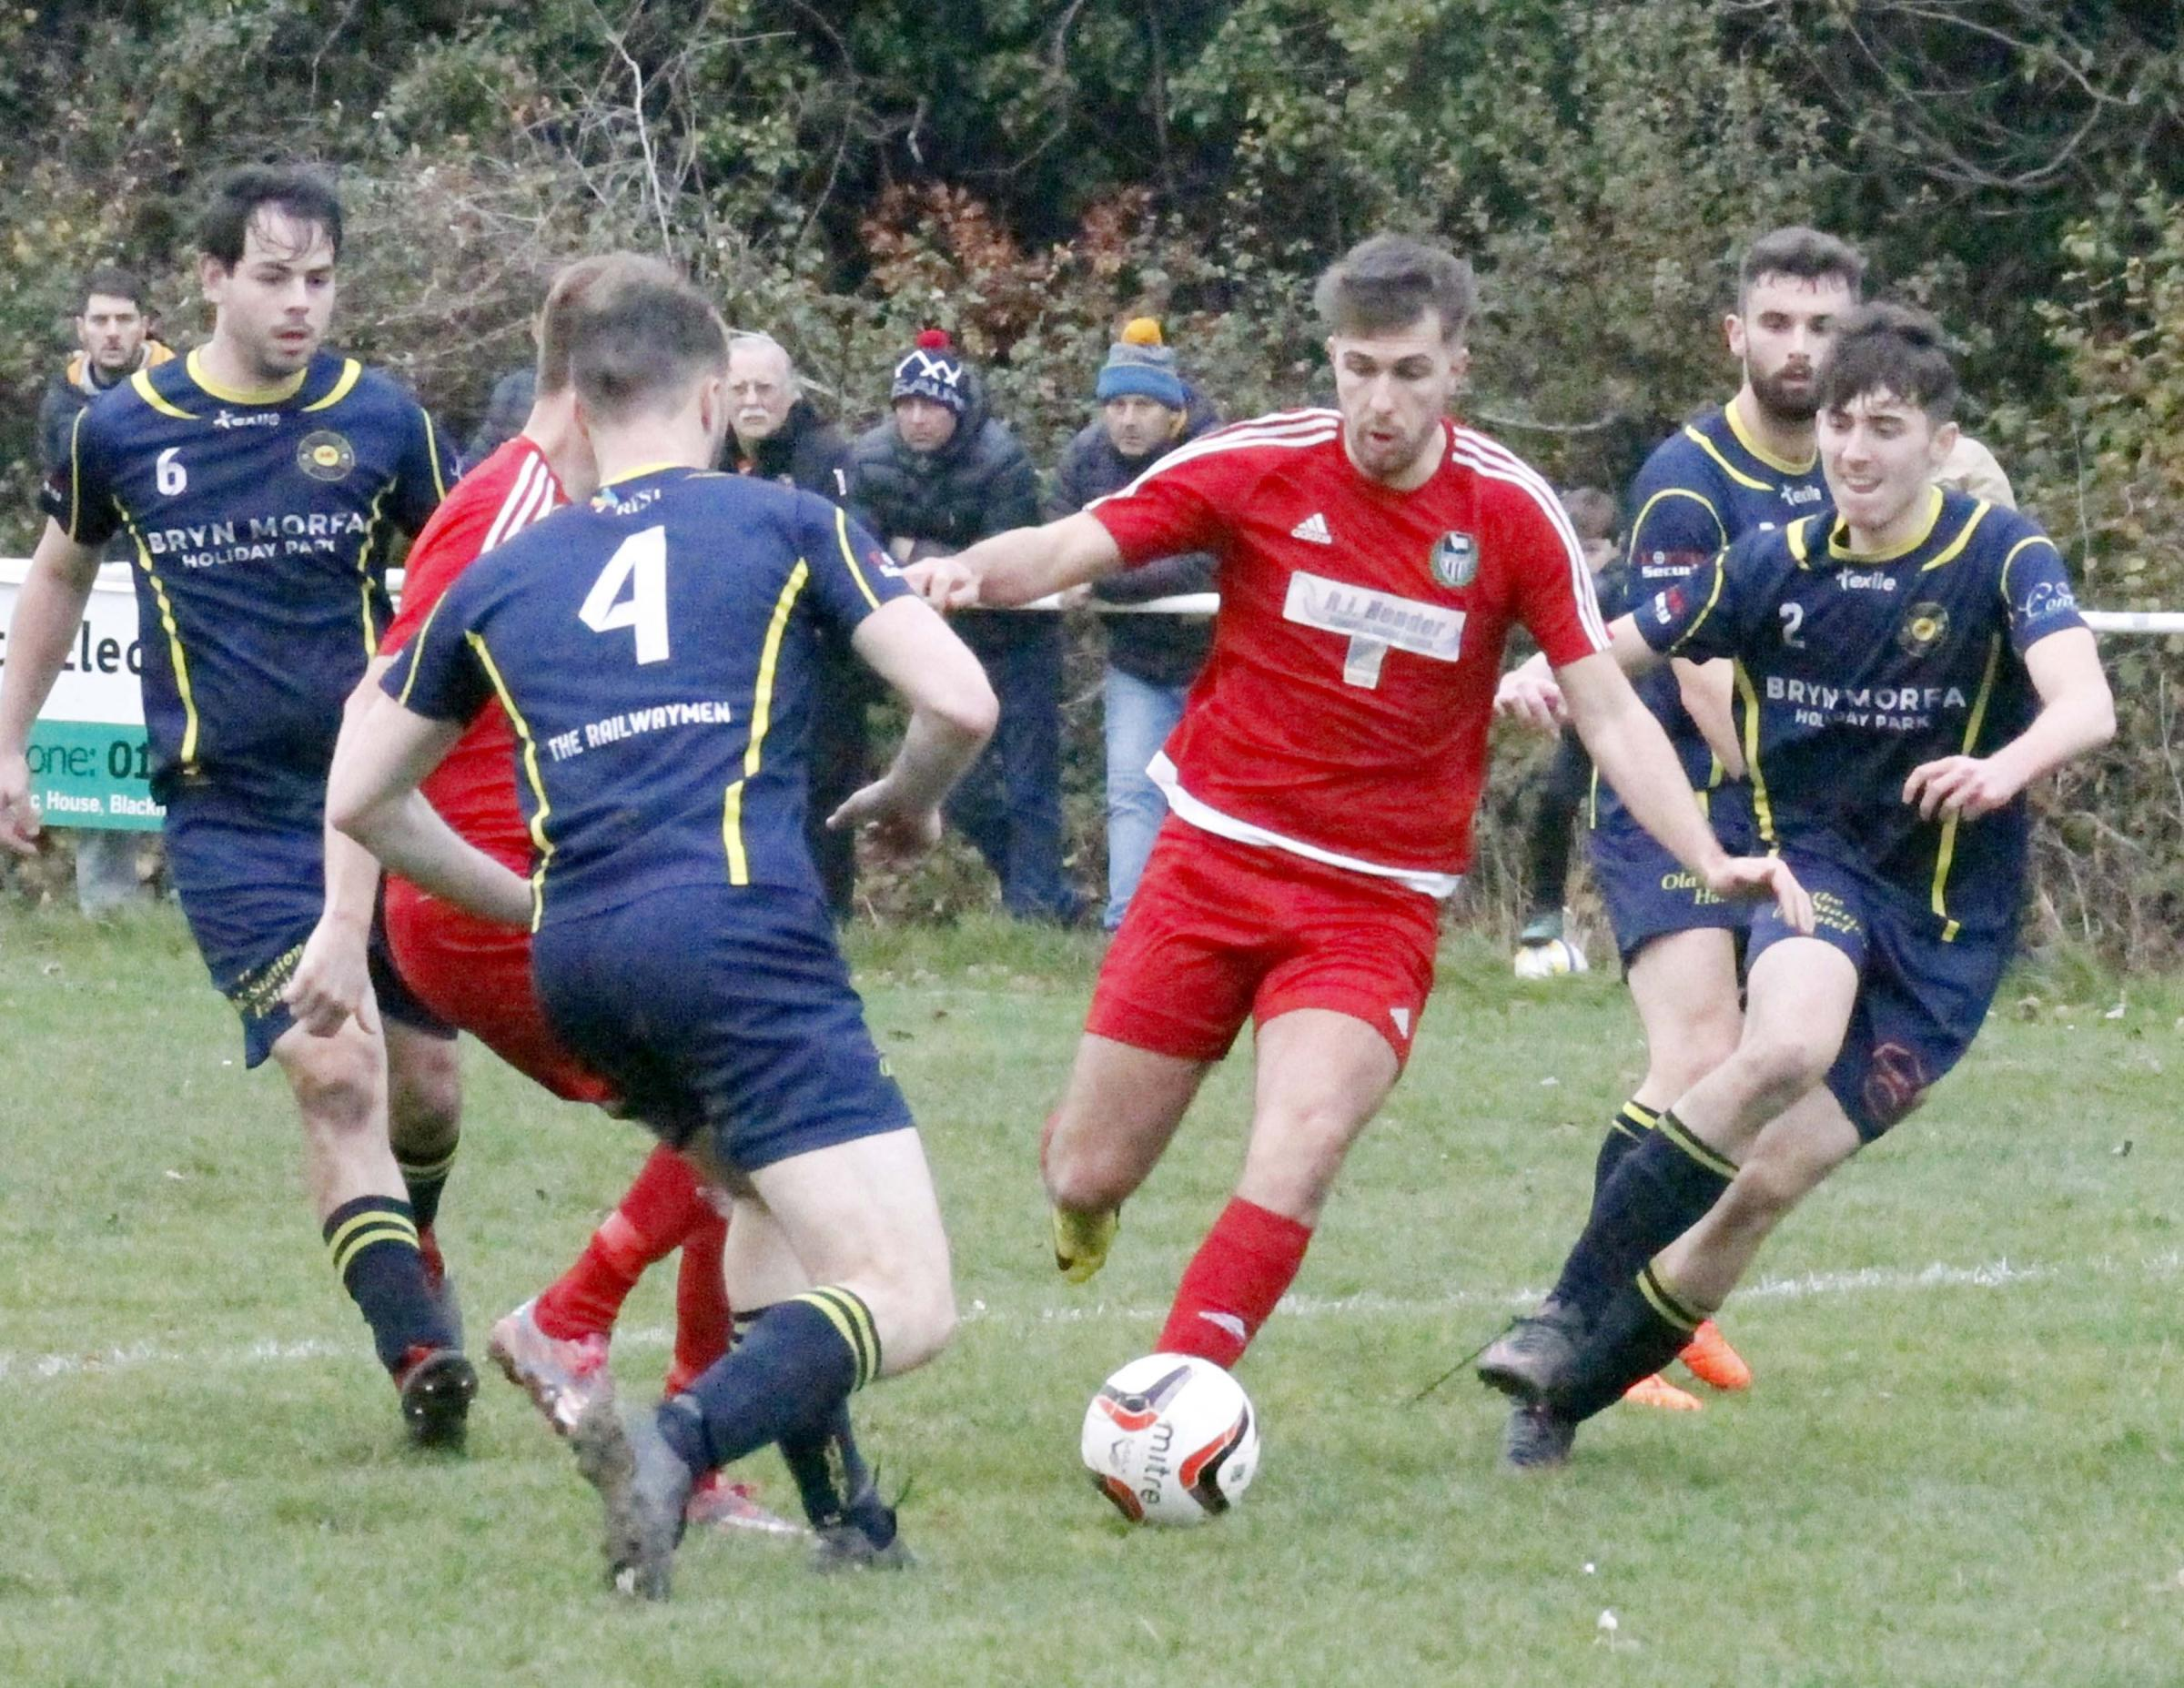 Peter Jones in action for Llandudno Albion (Photo by Dave Thomas)